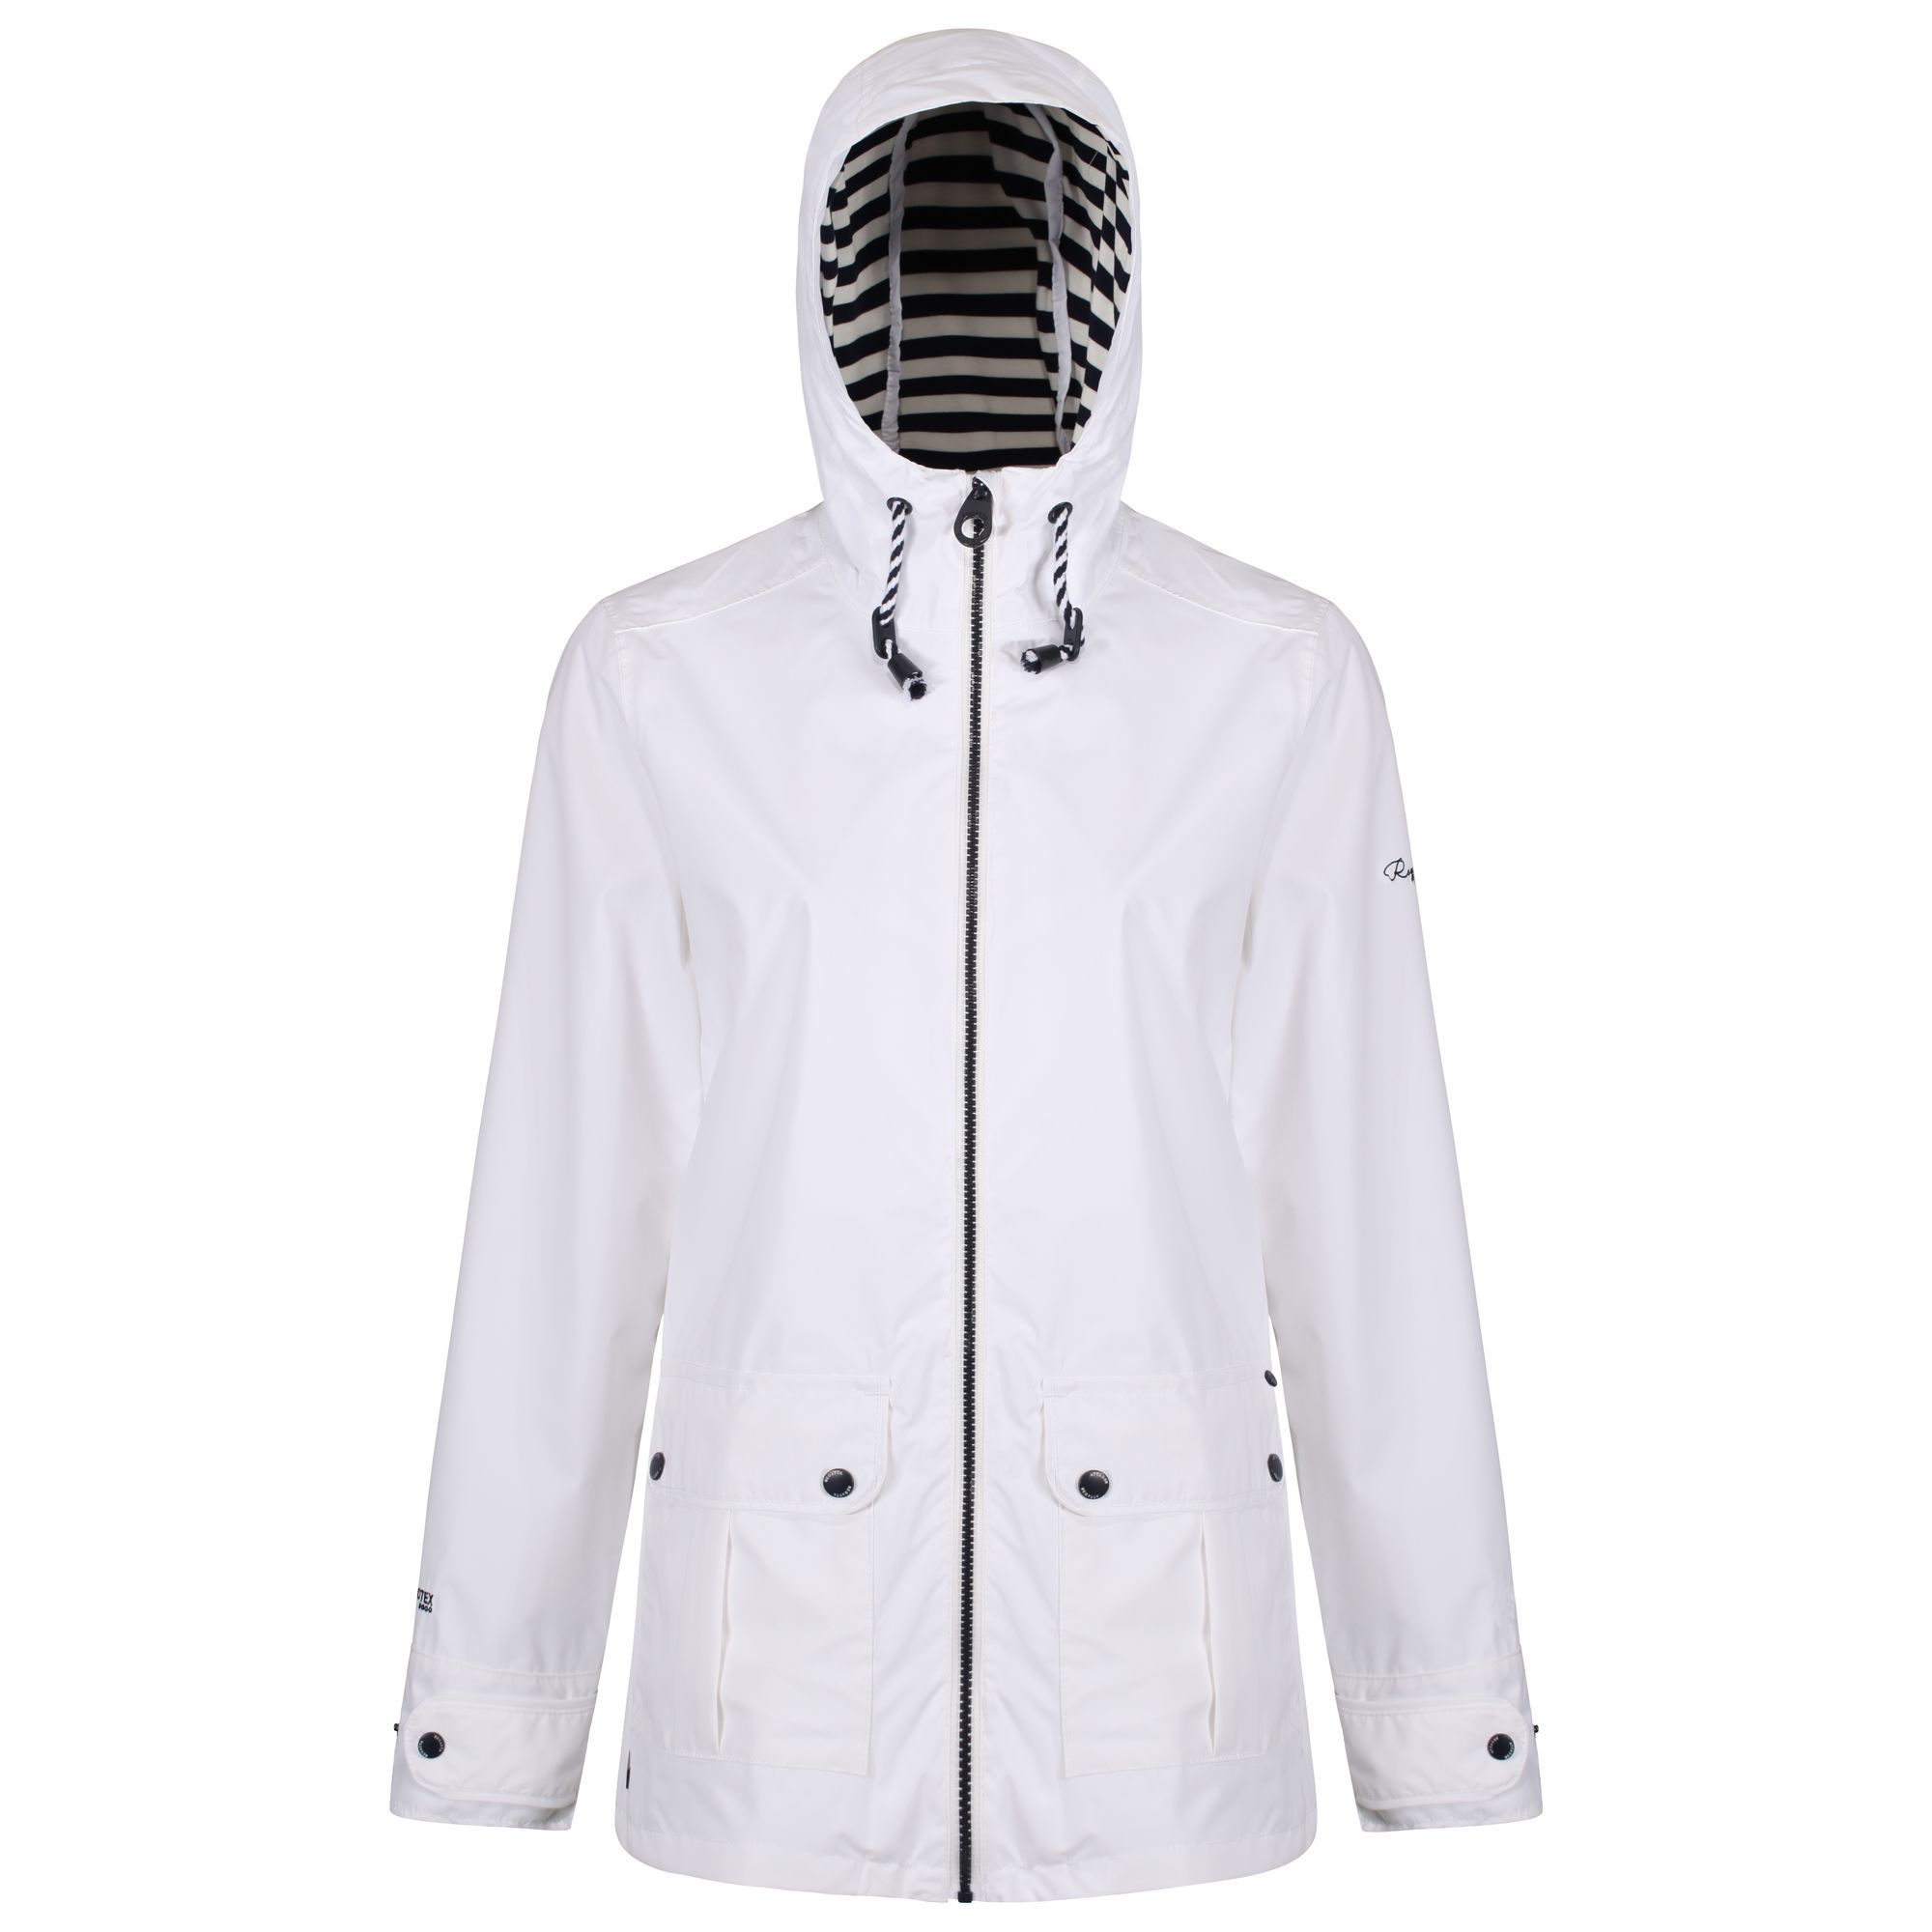 Regatta Bayeur Waterproof Jacket, White